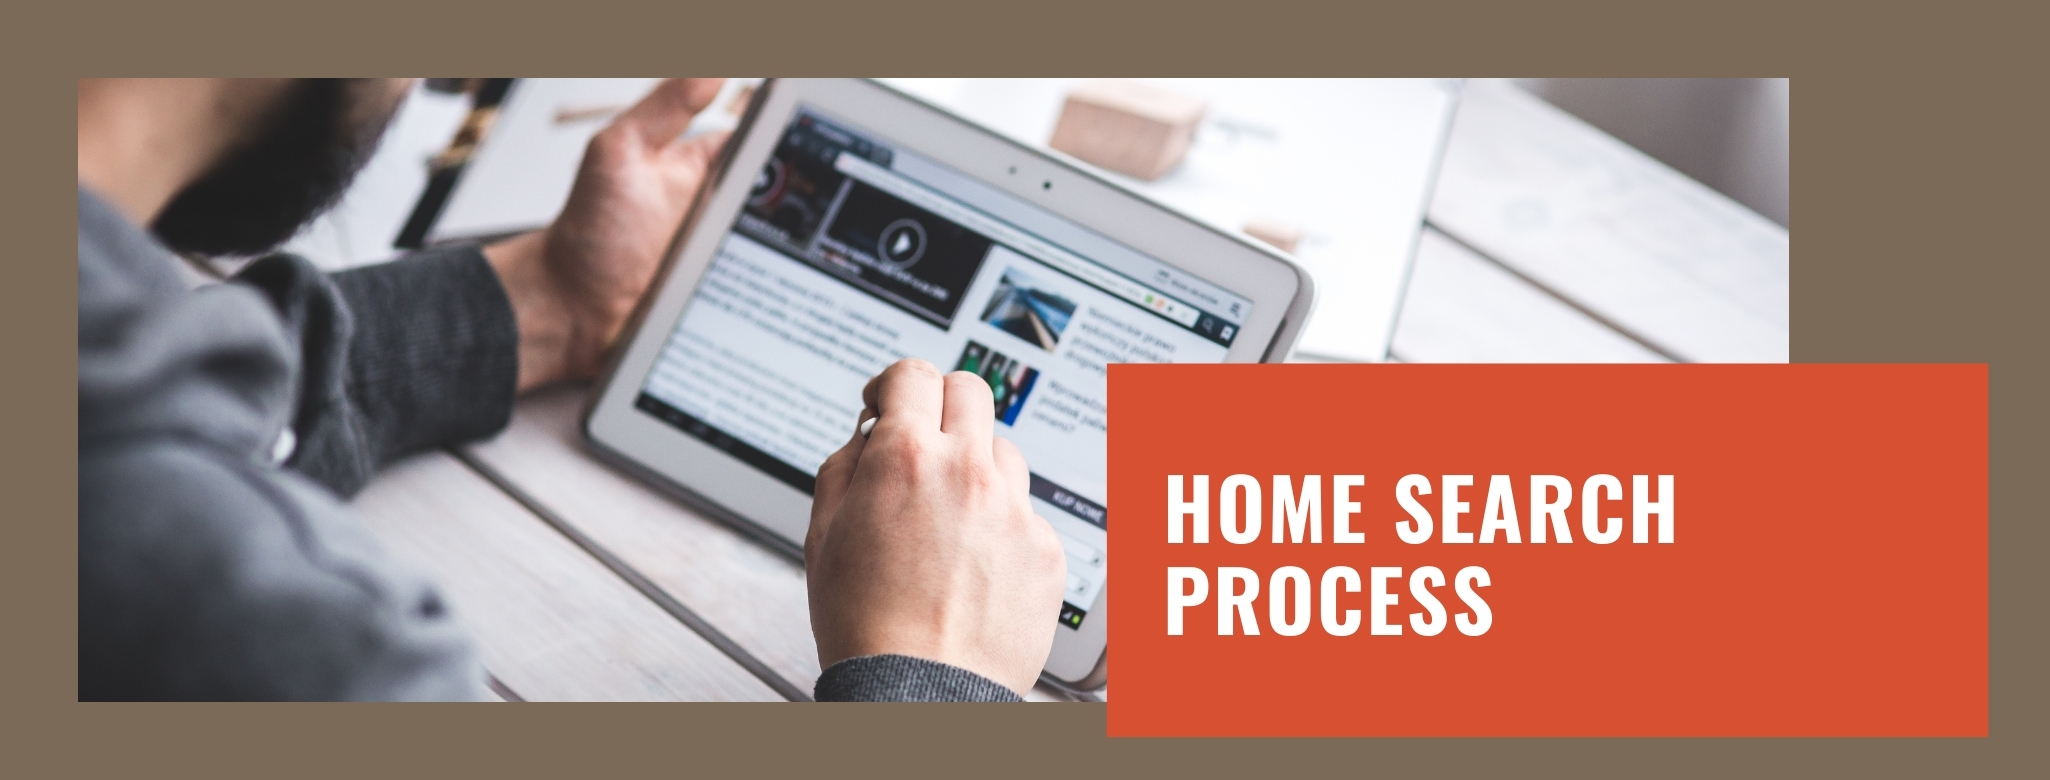 Home Search Process